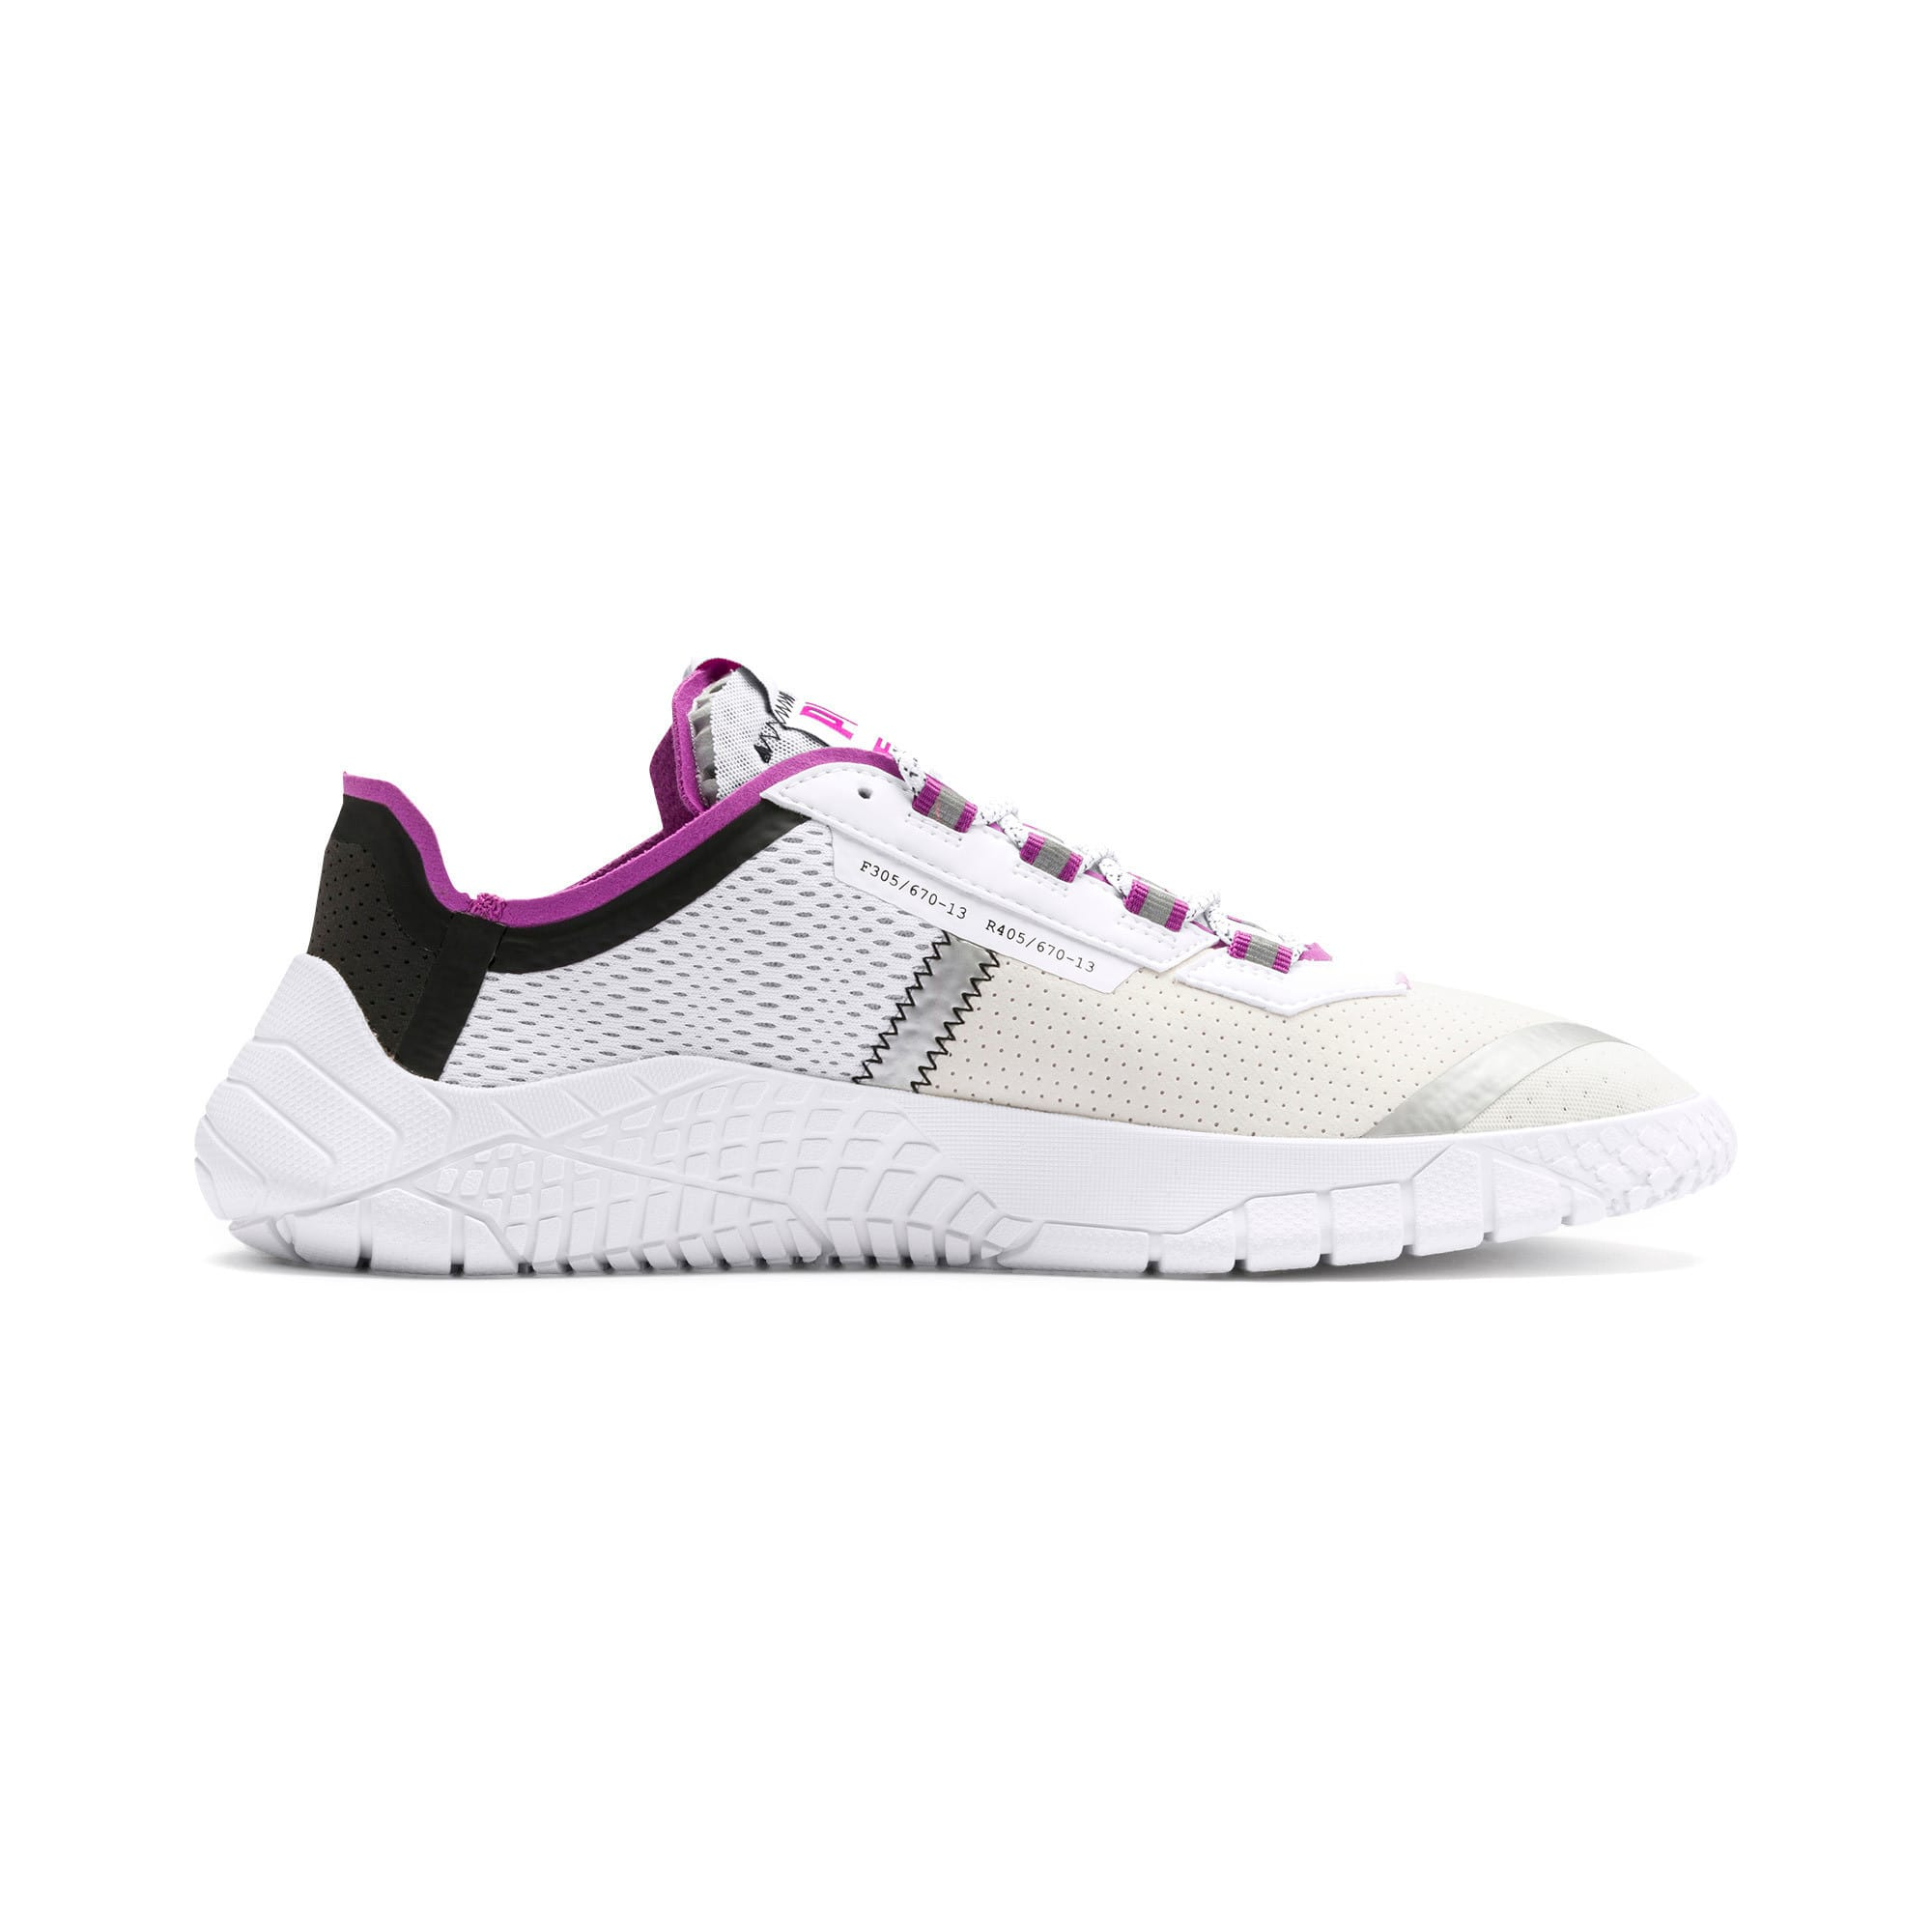 Thumbnail 6 of Scarpe da ginnastica Pirelli Replicat-X, White-Hyacinth Viol-Red, medium